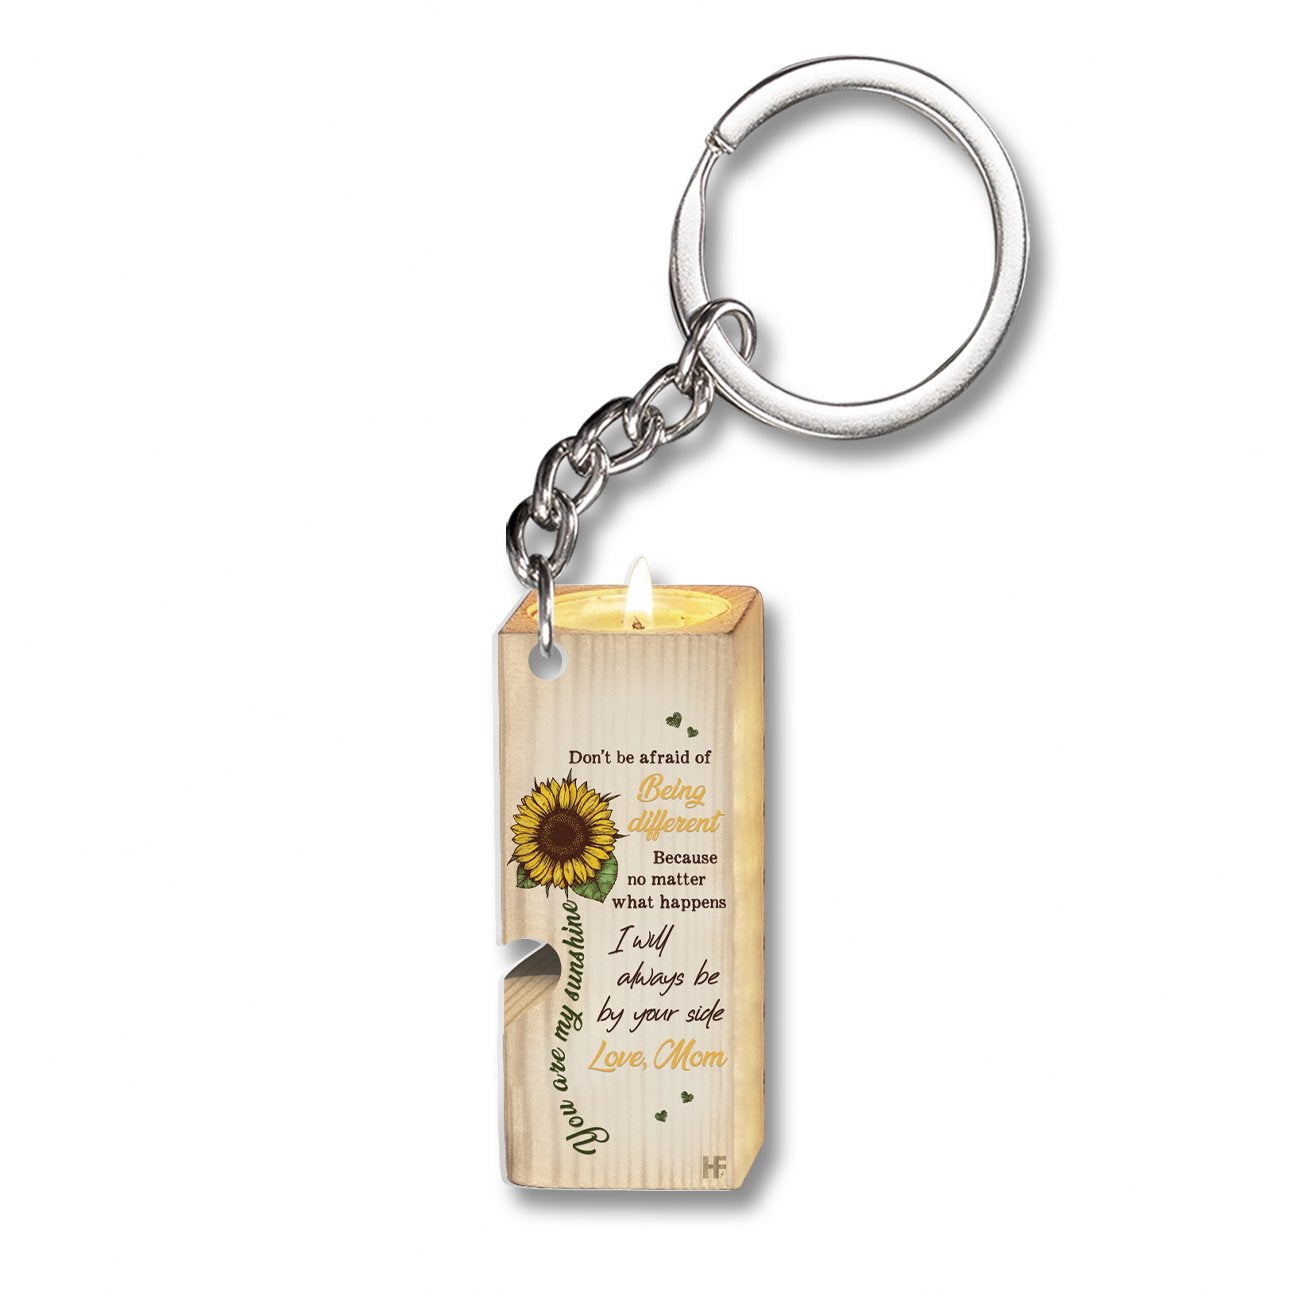 You Are My Sunshine 2 EZ23 3001 Keychain